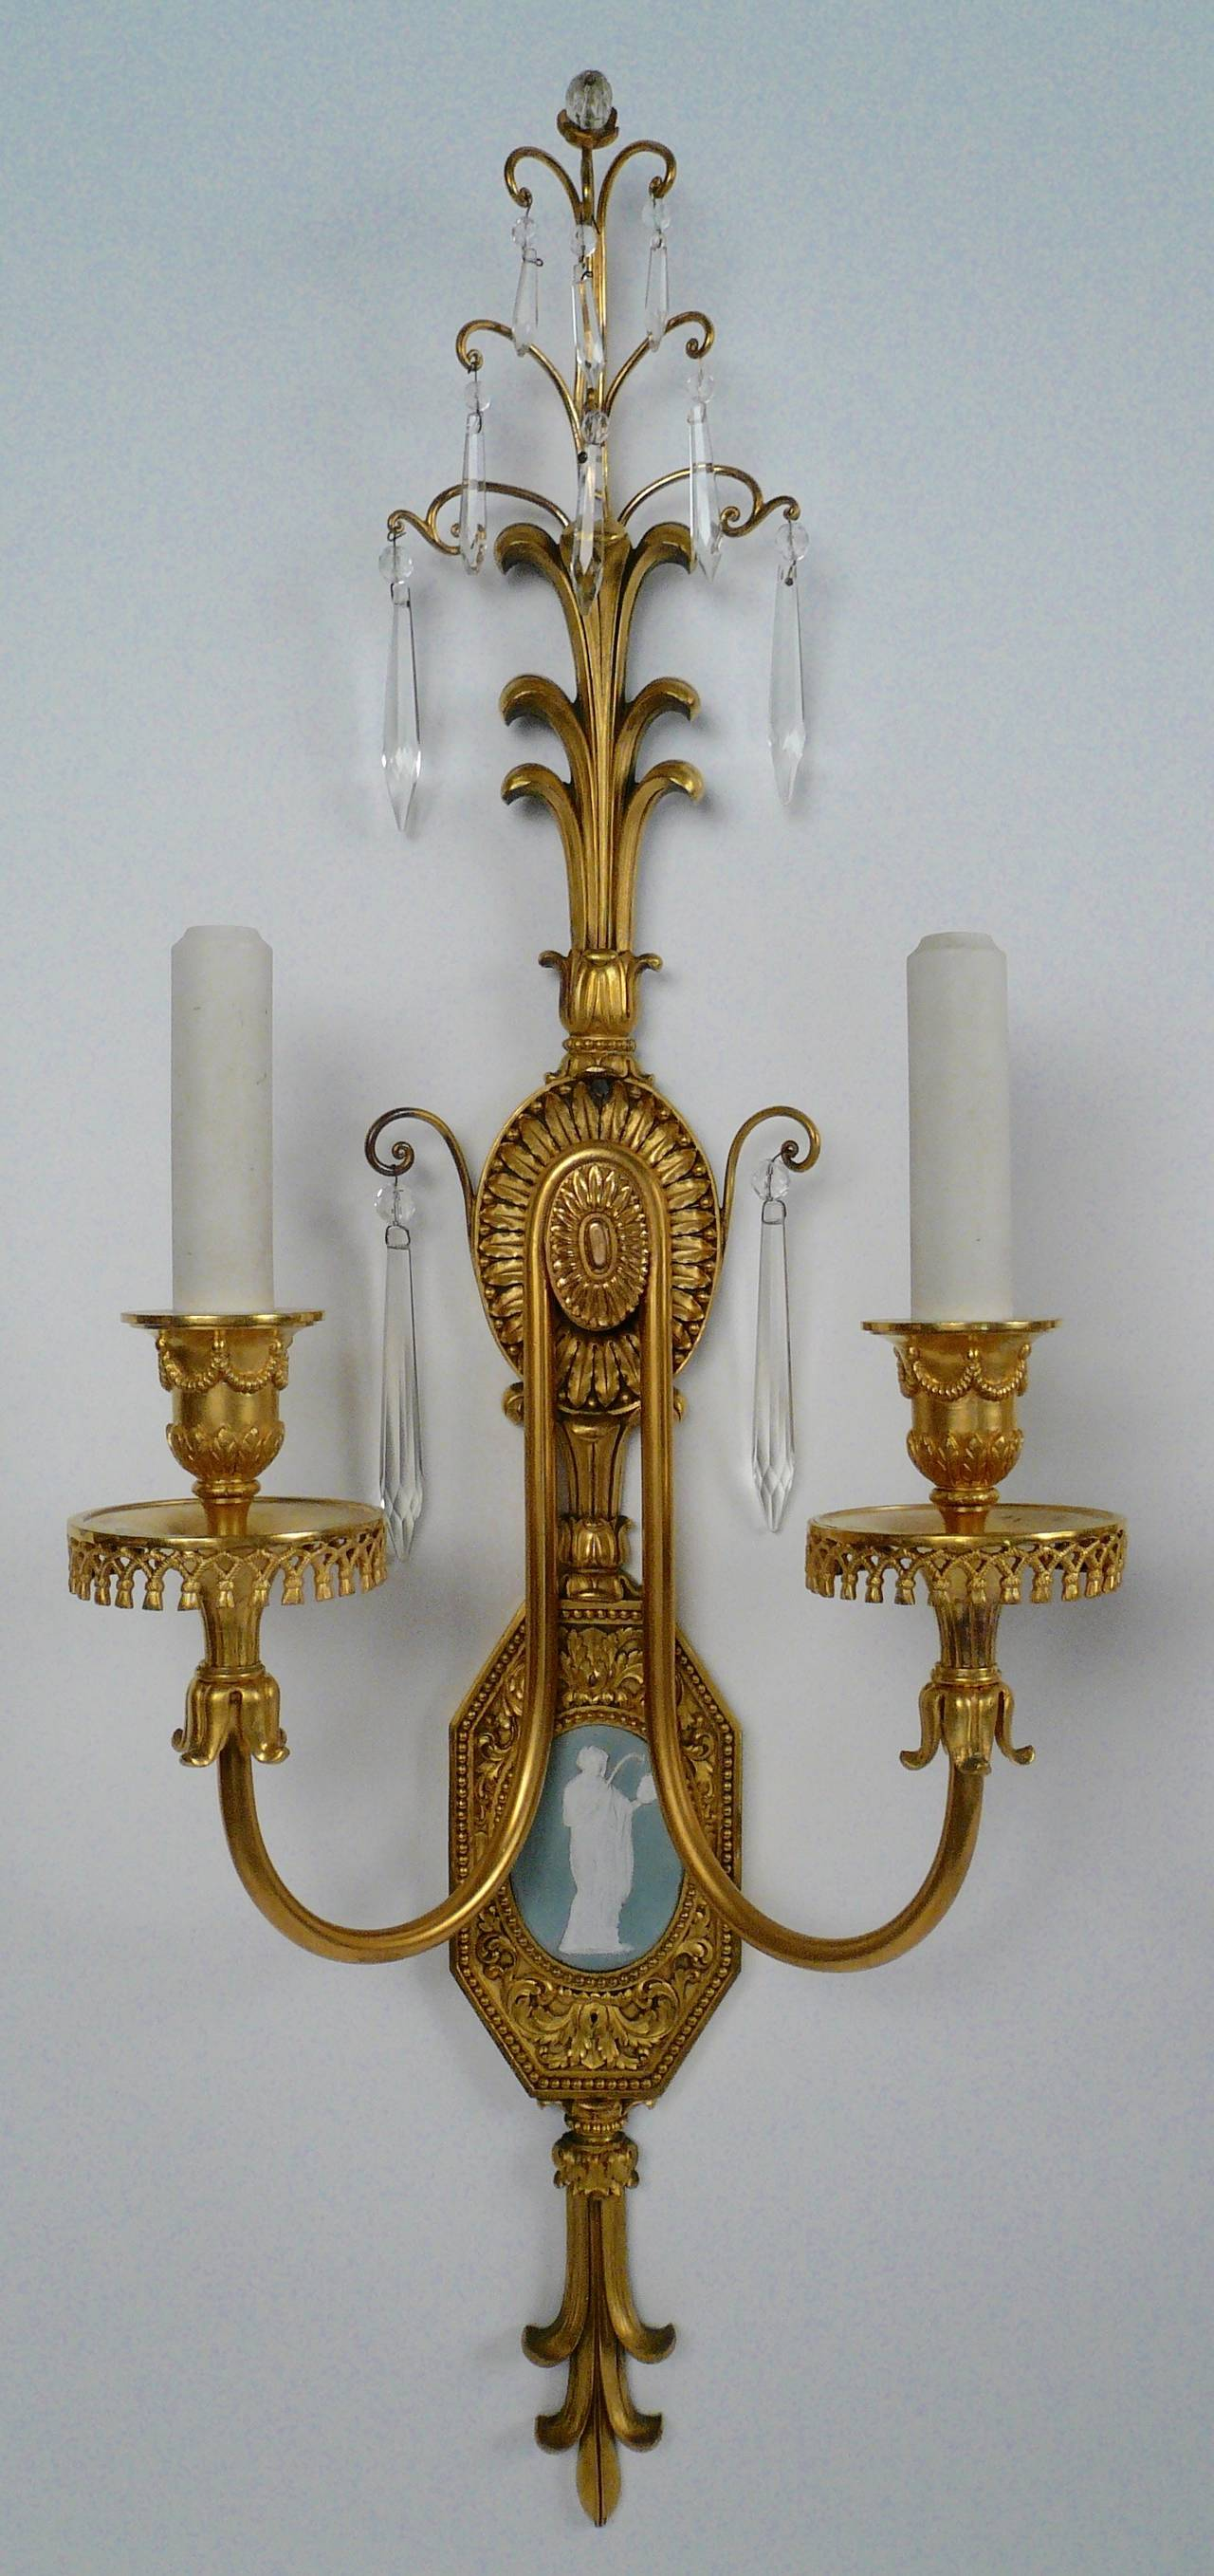 American Pair of Adam Style Gilt Bronze Sconces with Enamel Plaques, by E.F. Caldwell For Sale